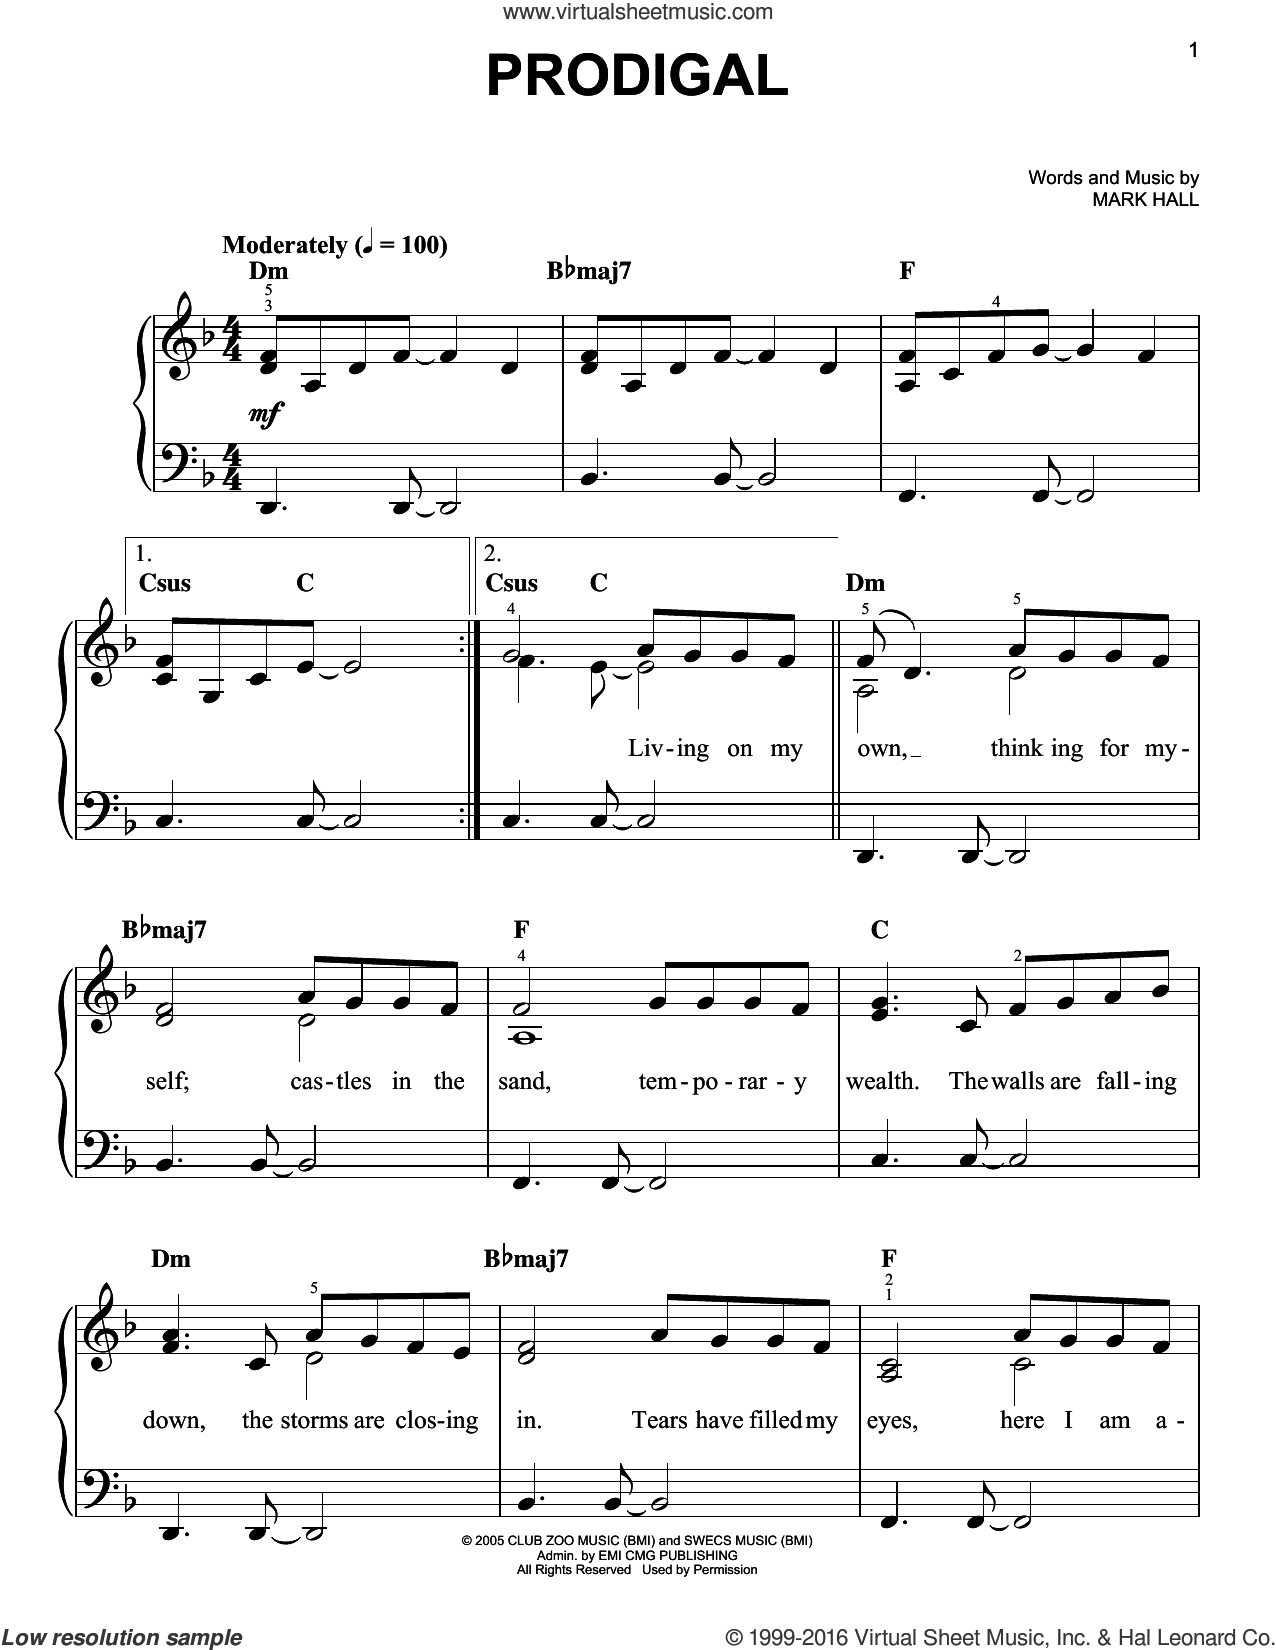 Prodigal sheet music for piano solo by Mark Hall